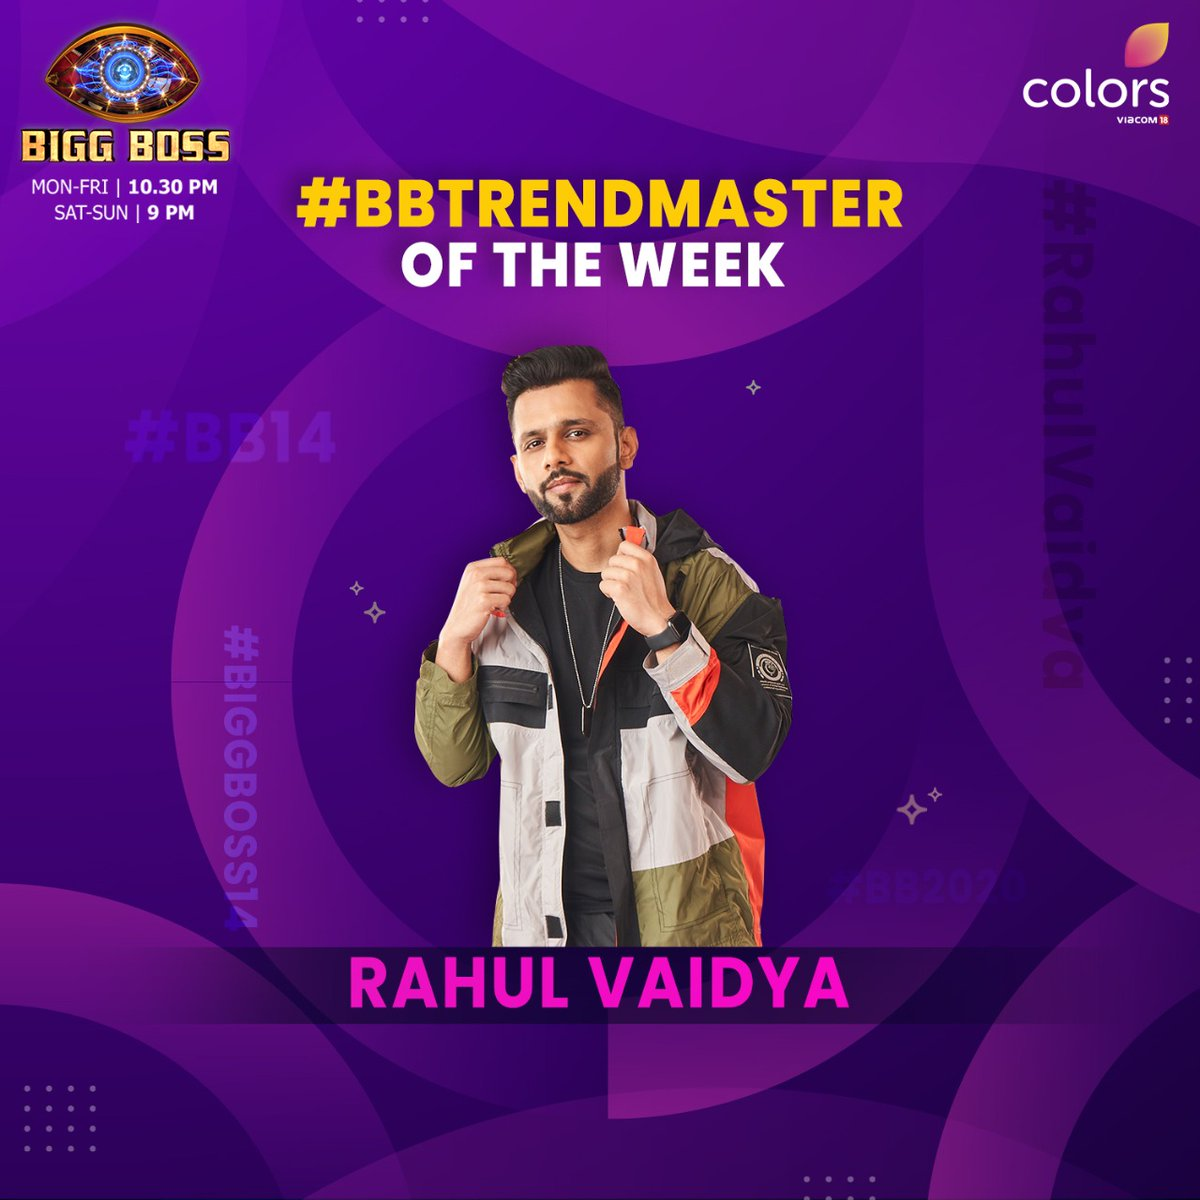 Congratulations to @rahulvaidya23 for being the #BBTrendMaster of this week! How do you feel #RKVians?  Watch #BiggBoss tonight at 10:30 PM. Catch it before TV on @VootSelect. @BeingSalmanKhan #BiggBoss2020 #BiggBoss14 #BB14 https://t.co/eYTNUMSwO2